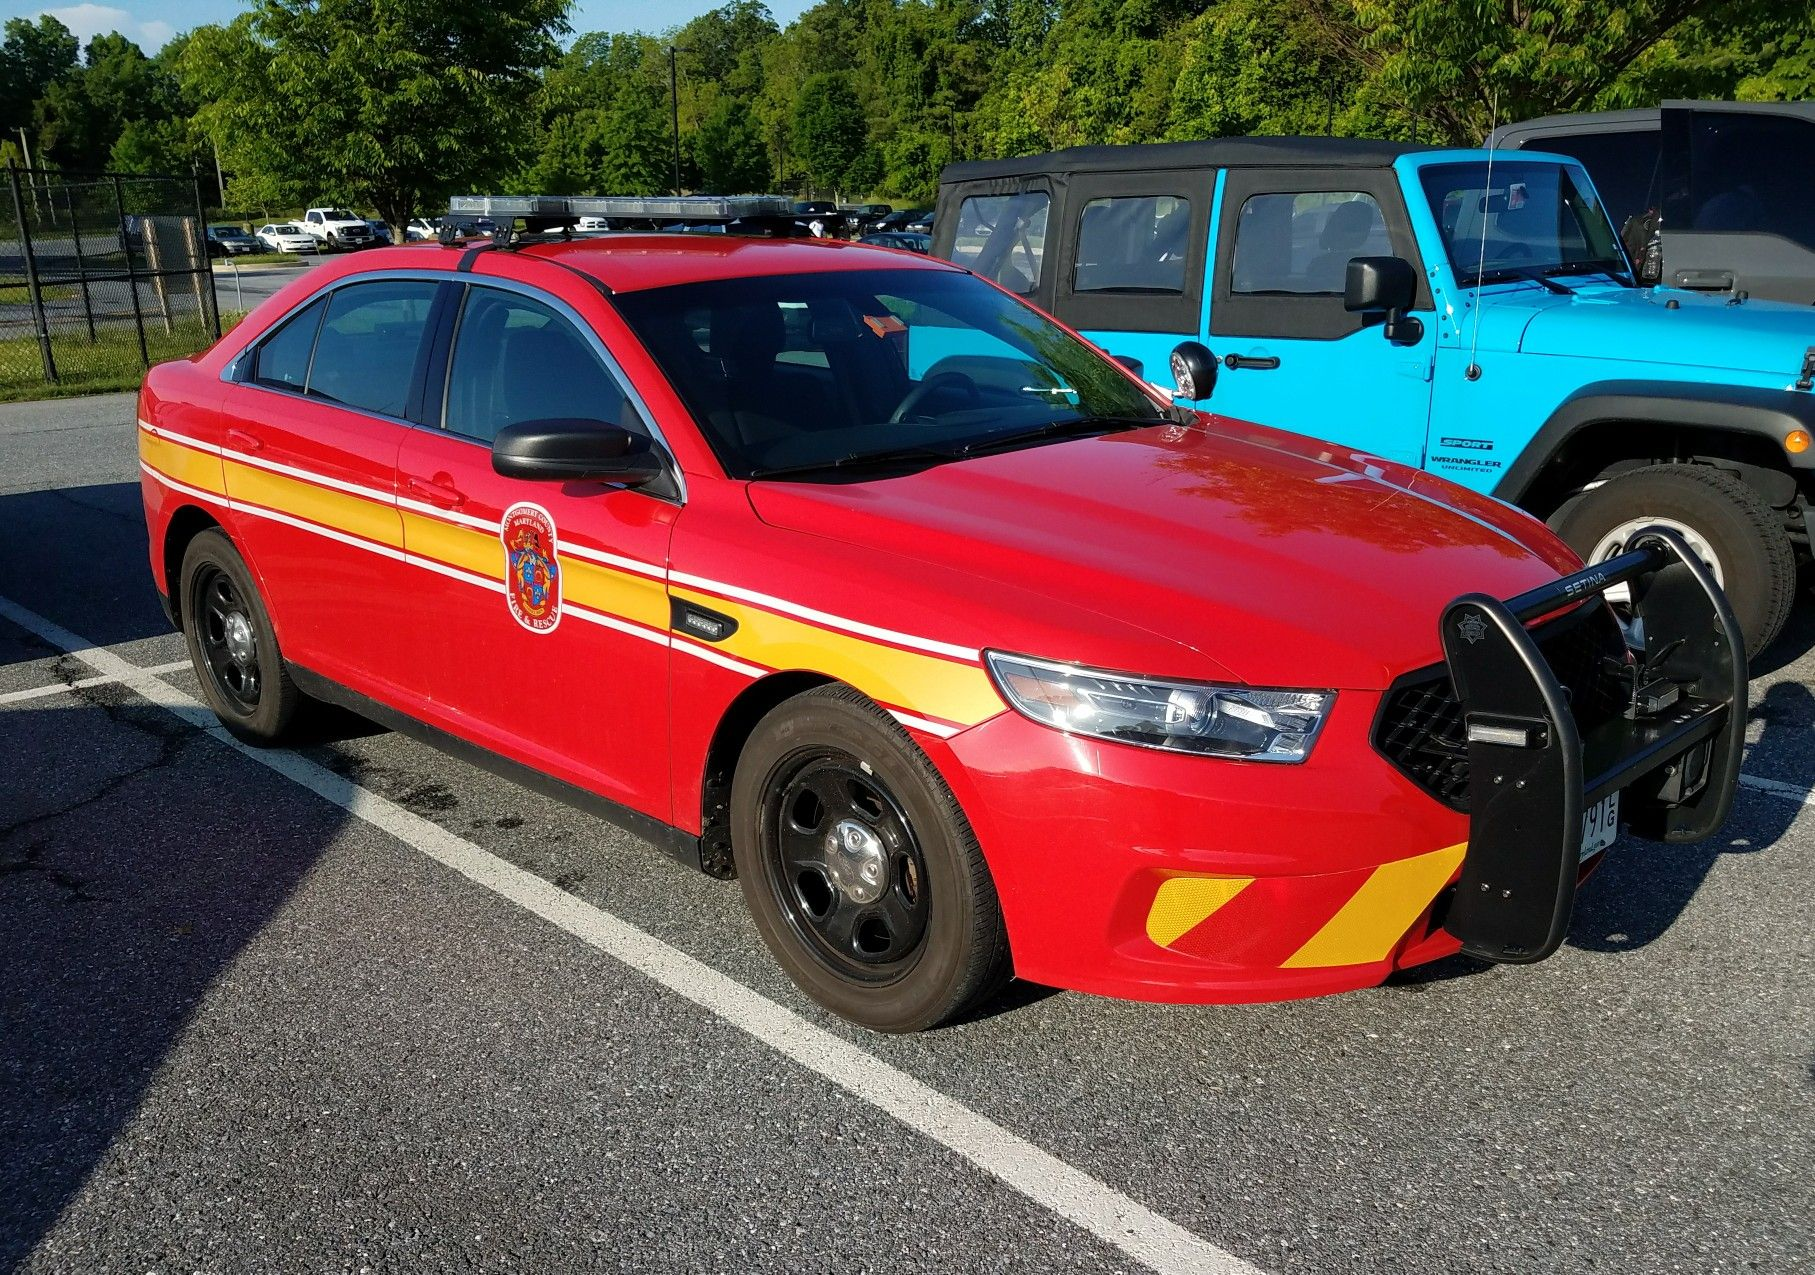 Montgomery County Md Fire Department Smiller70 Rescue Vehicles Emergency Vehicles Firefighter